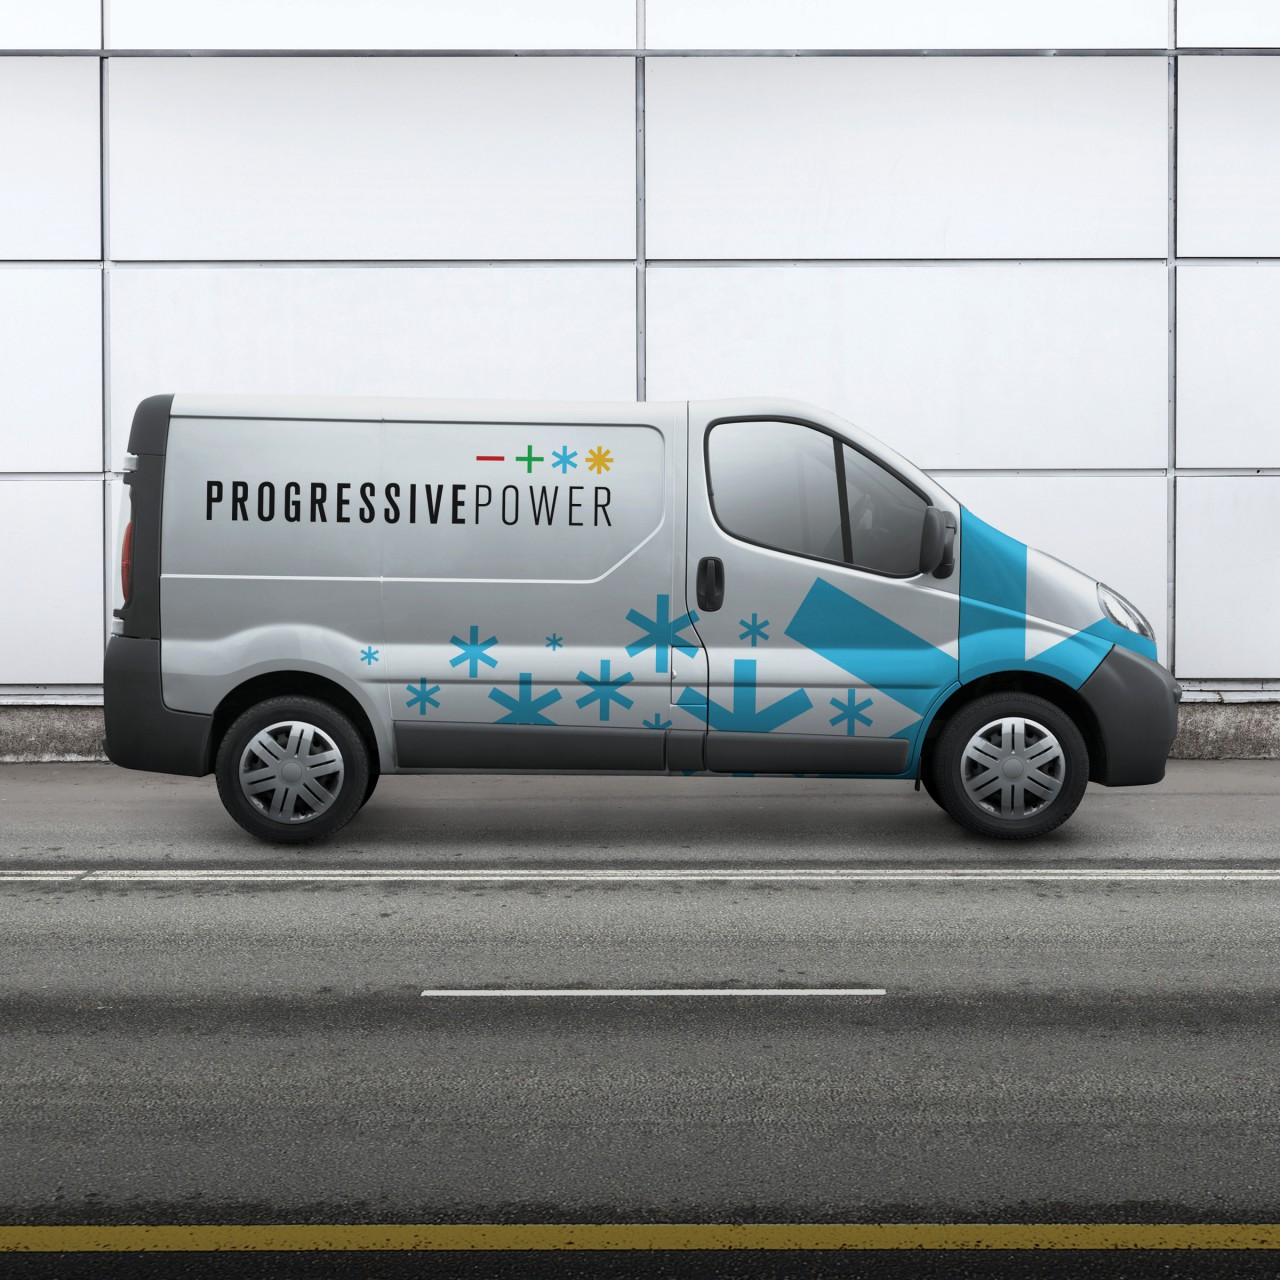 Image of Progressive Power logo service vehicle application